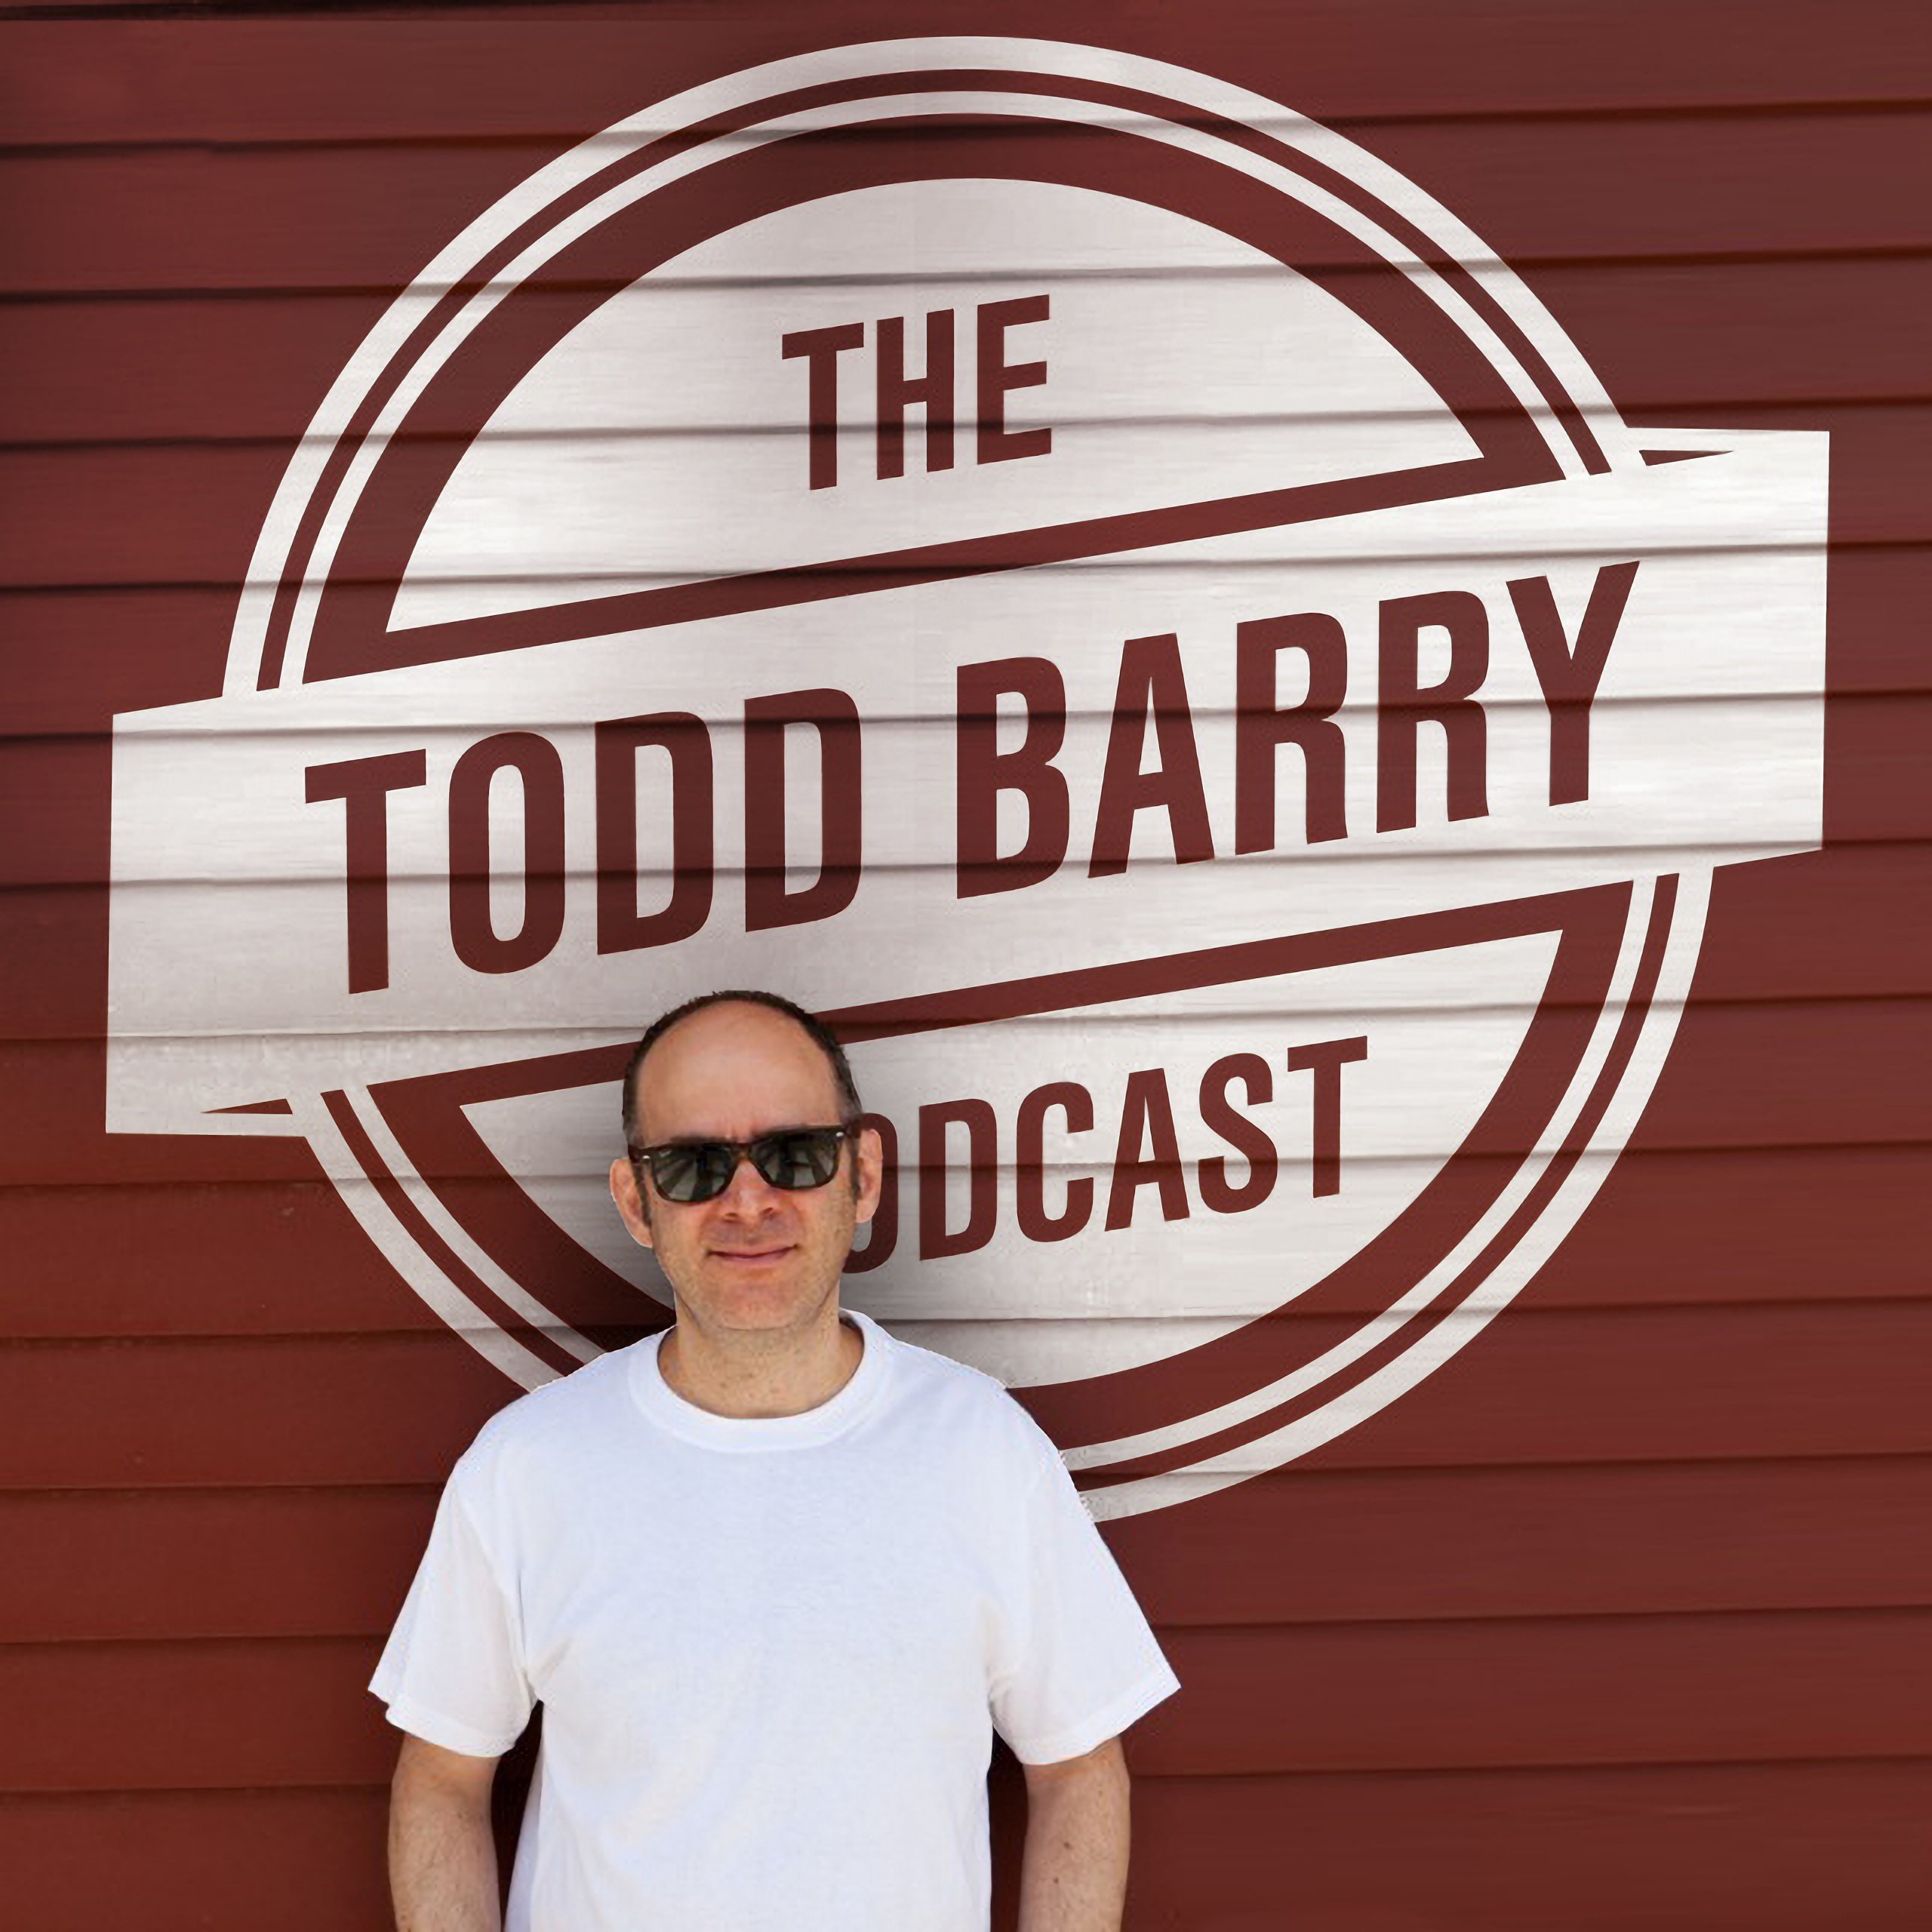 The Todd Barry Podcast Cover - Square